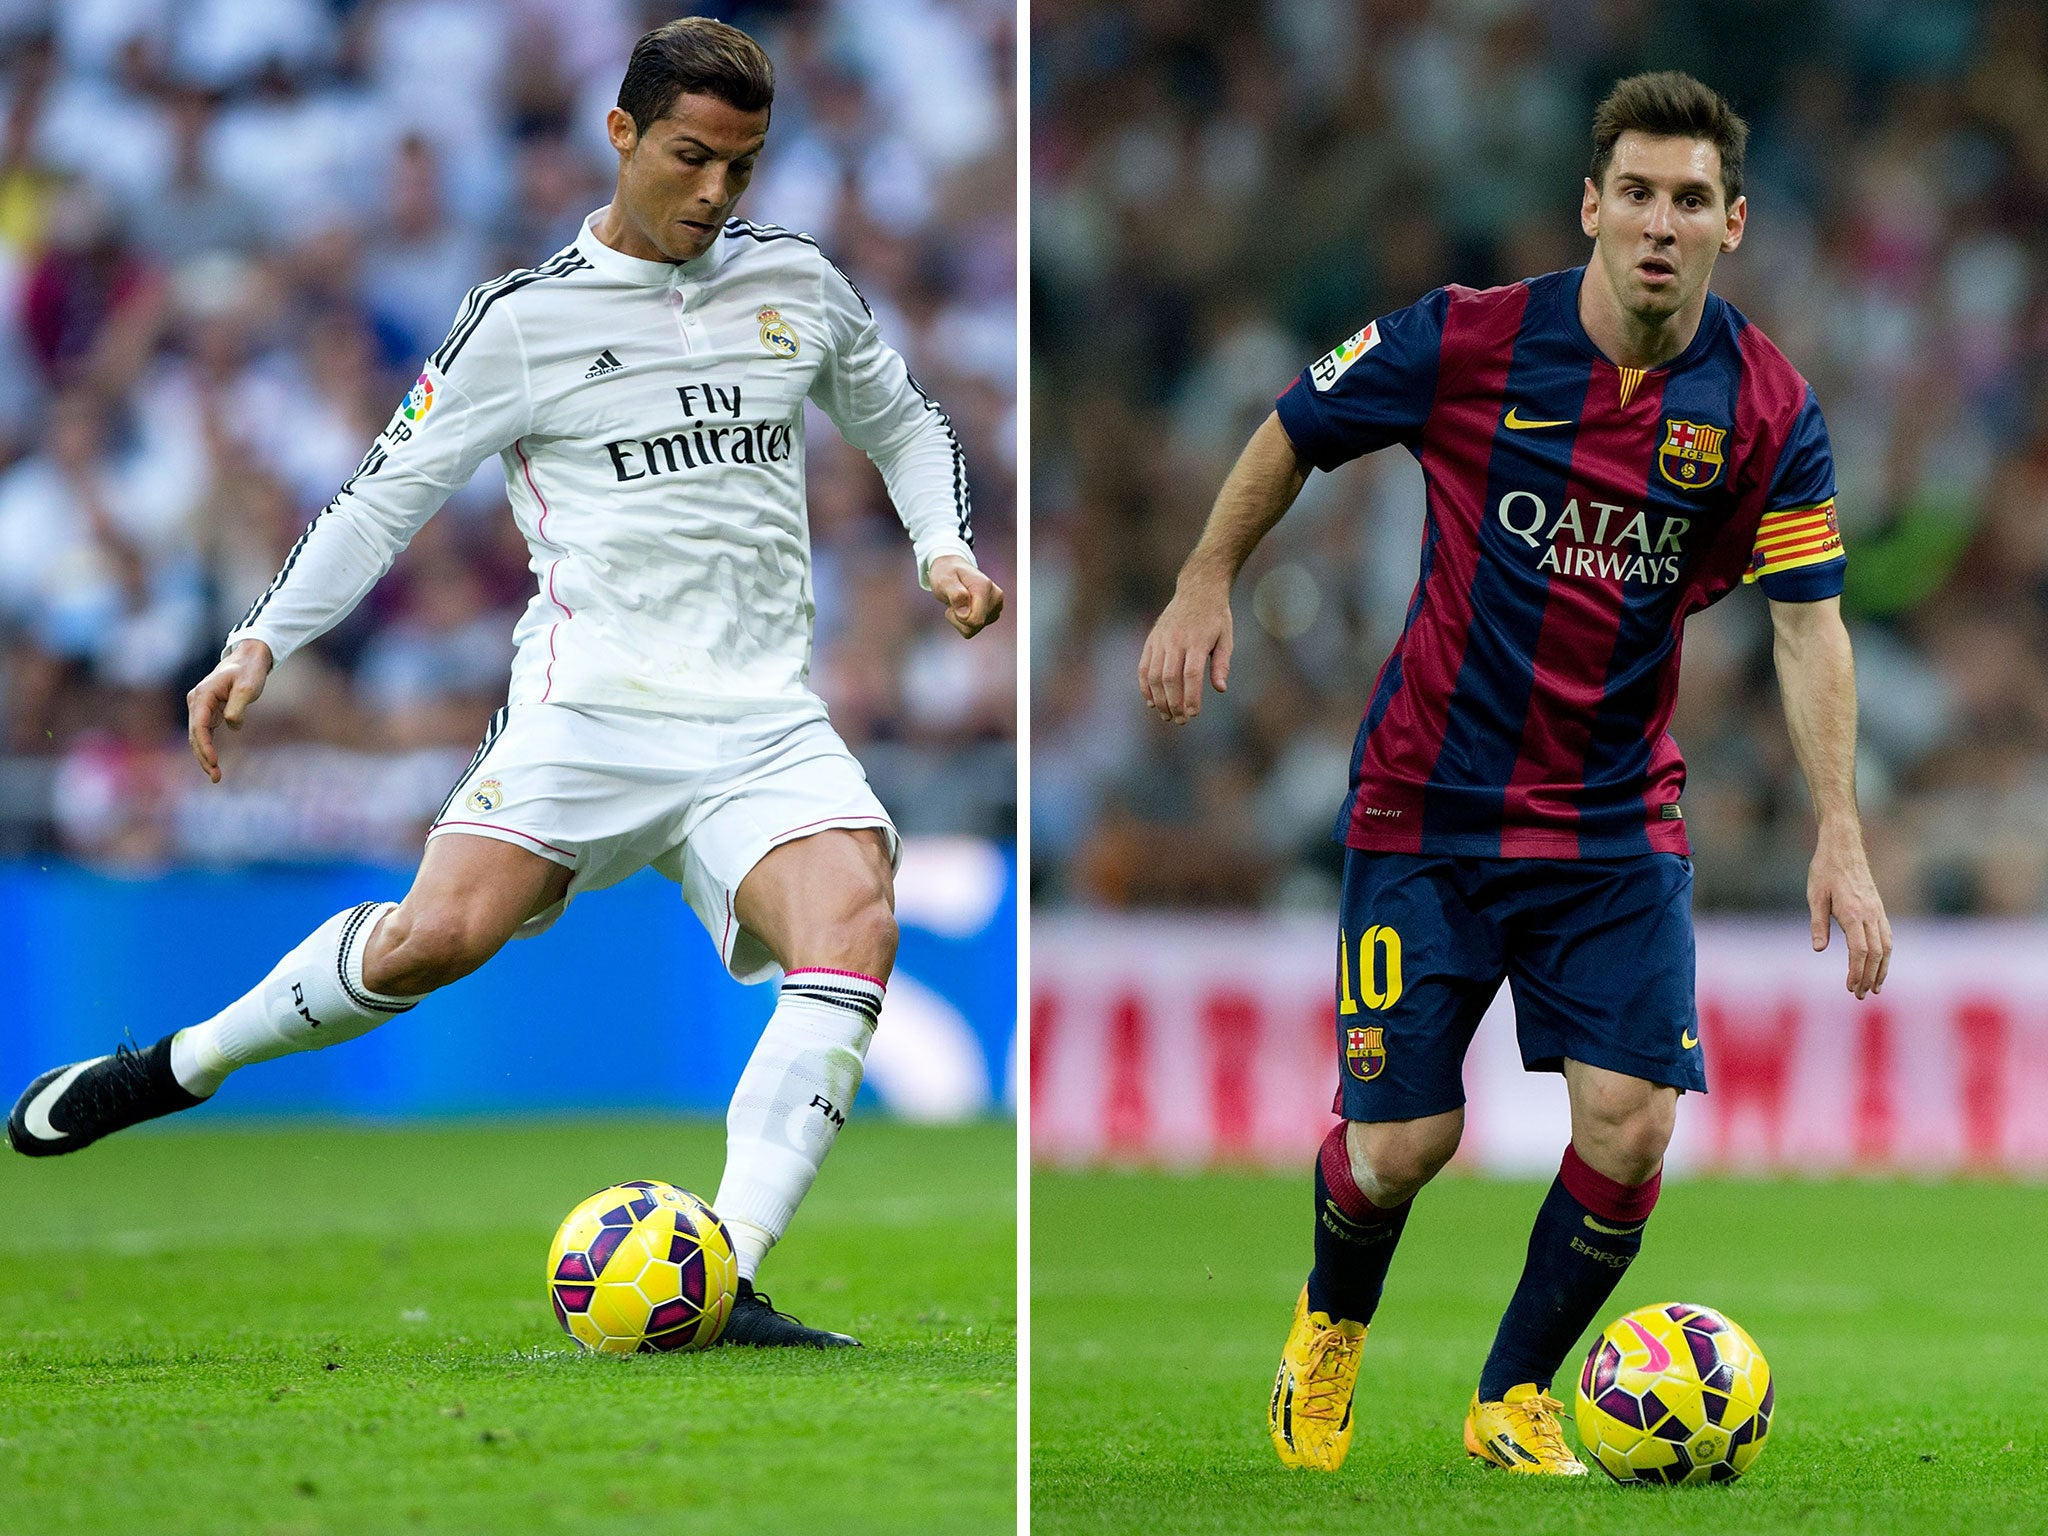 ronaldo v messi Messi and ronaldo are the world's greatest footballers, but who's the best compare goals, assists and honours for cristiano ronaldo & messi.